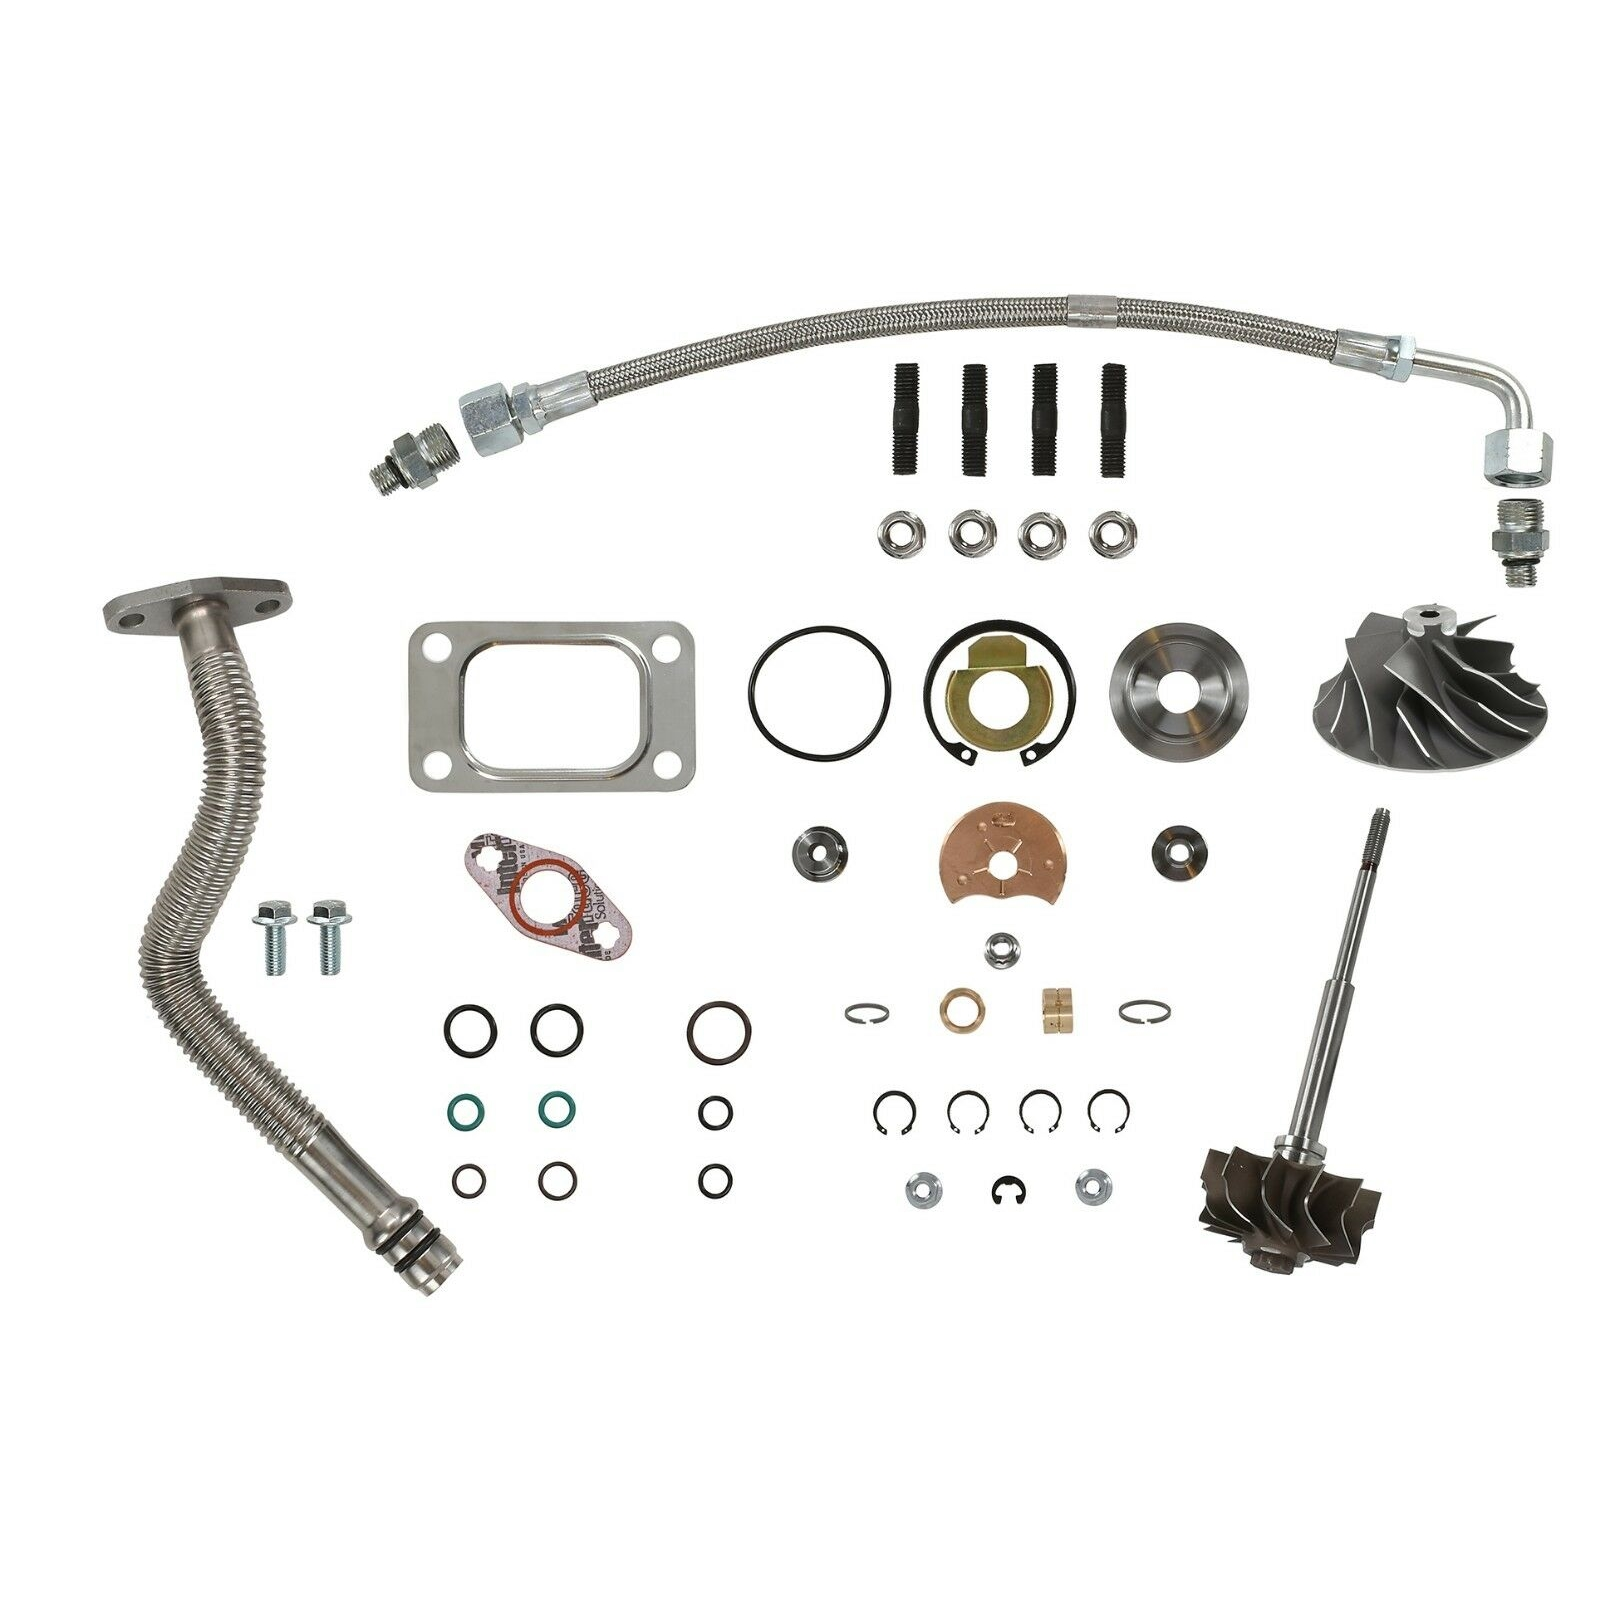 HE351CW Turbo Rebuild Kit Cast Wheel Turbine Shaft Oil Lines For 04.5-07 5.9L ISB Dodge Ram Cummins Diesel